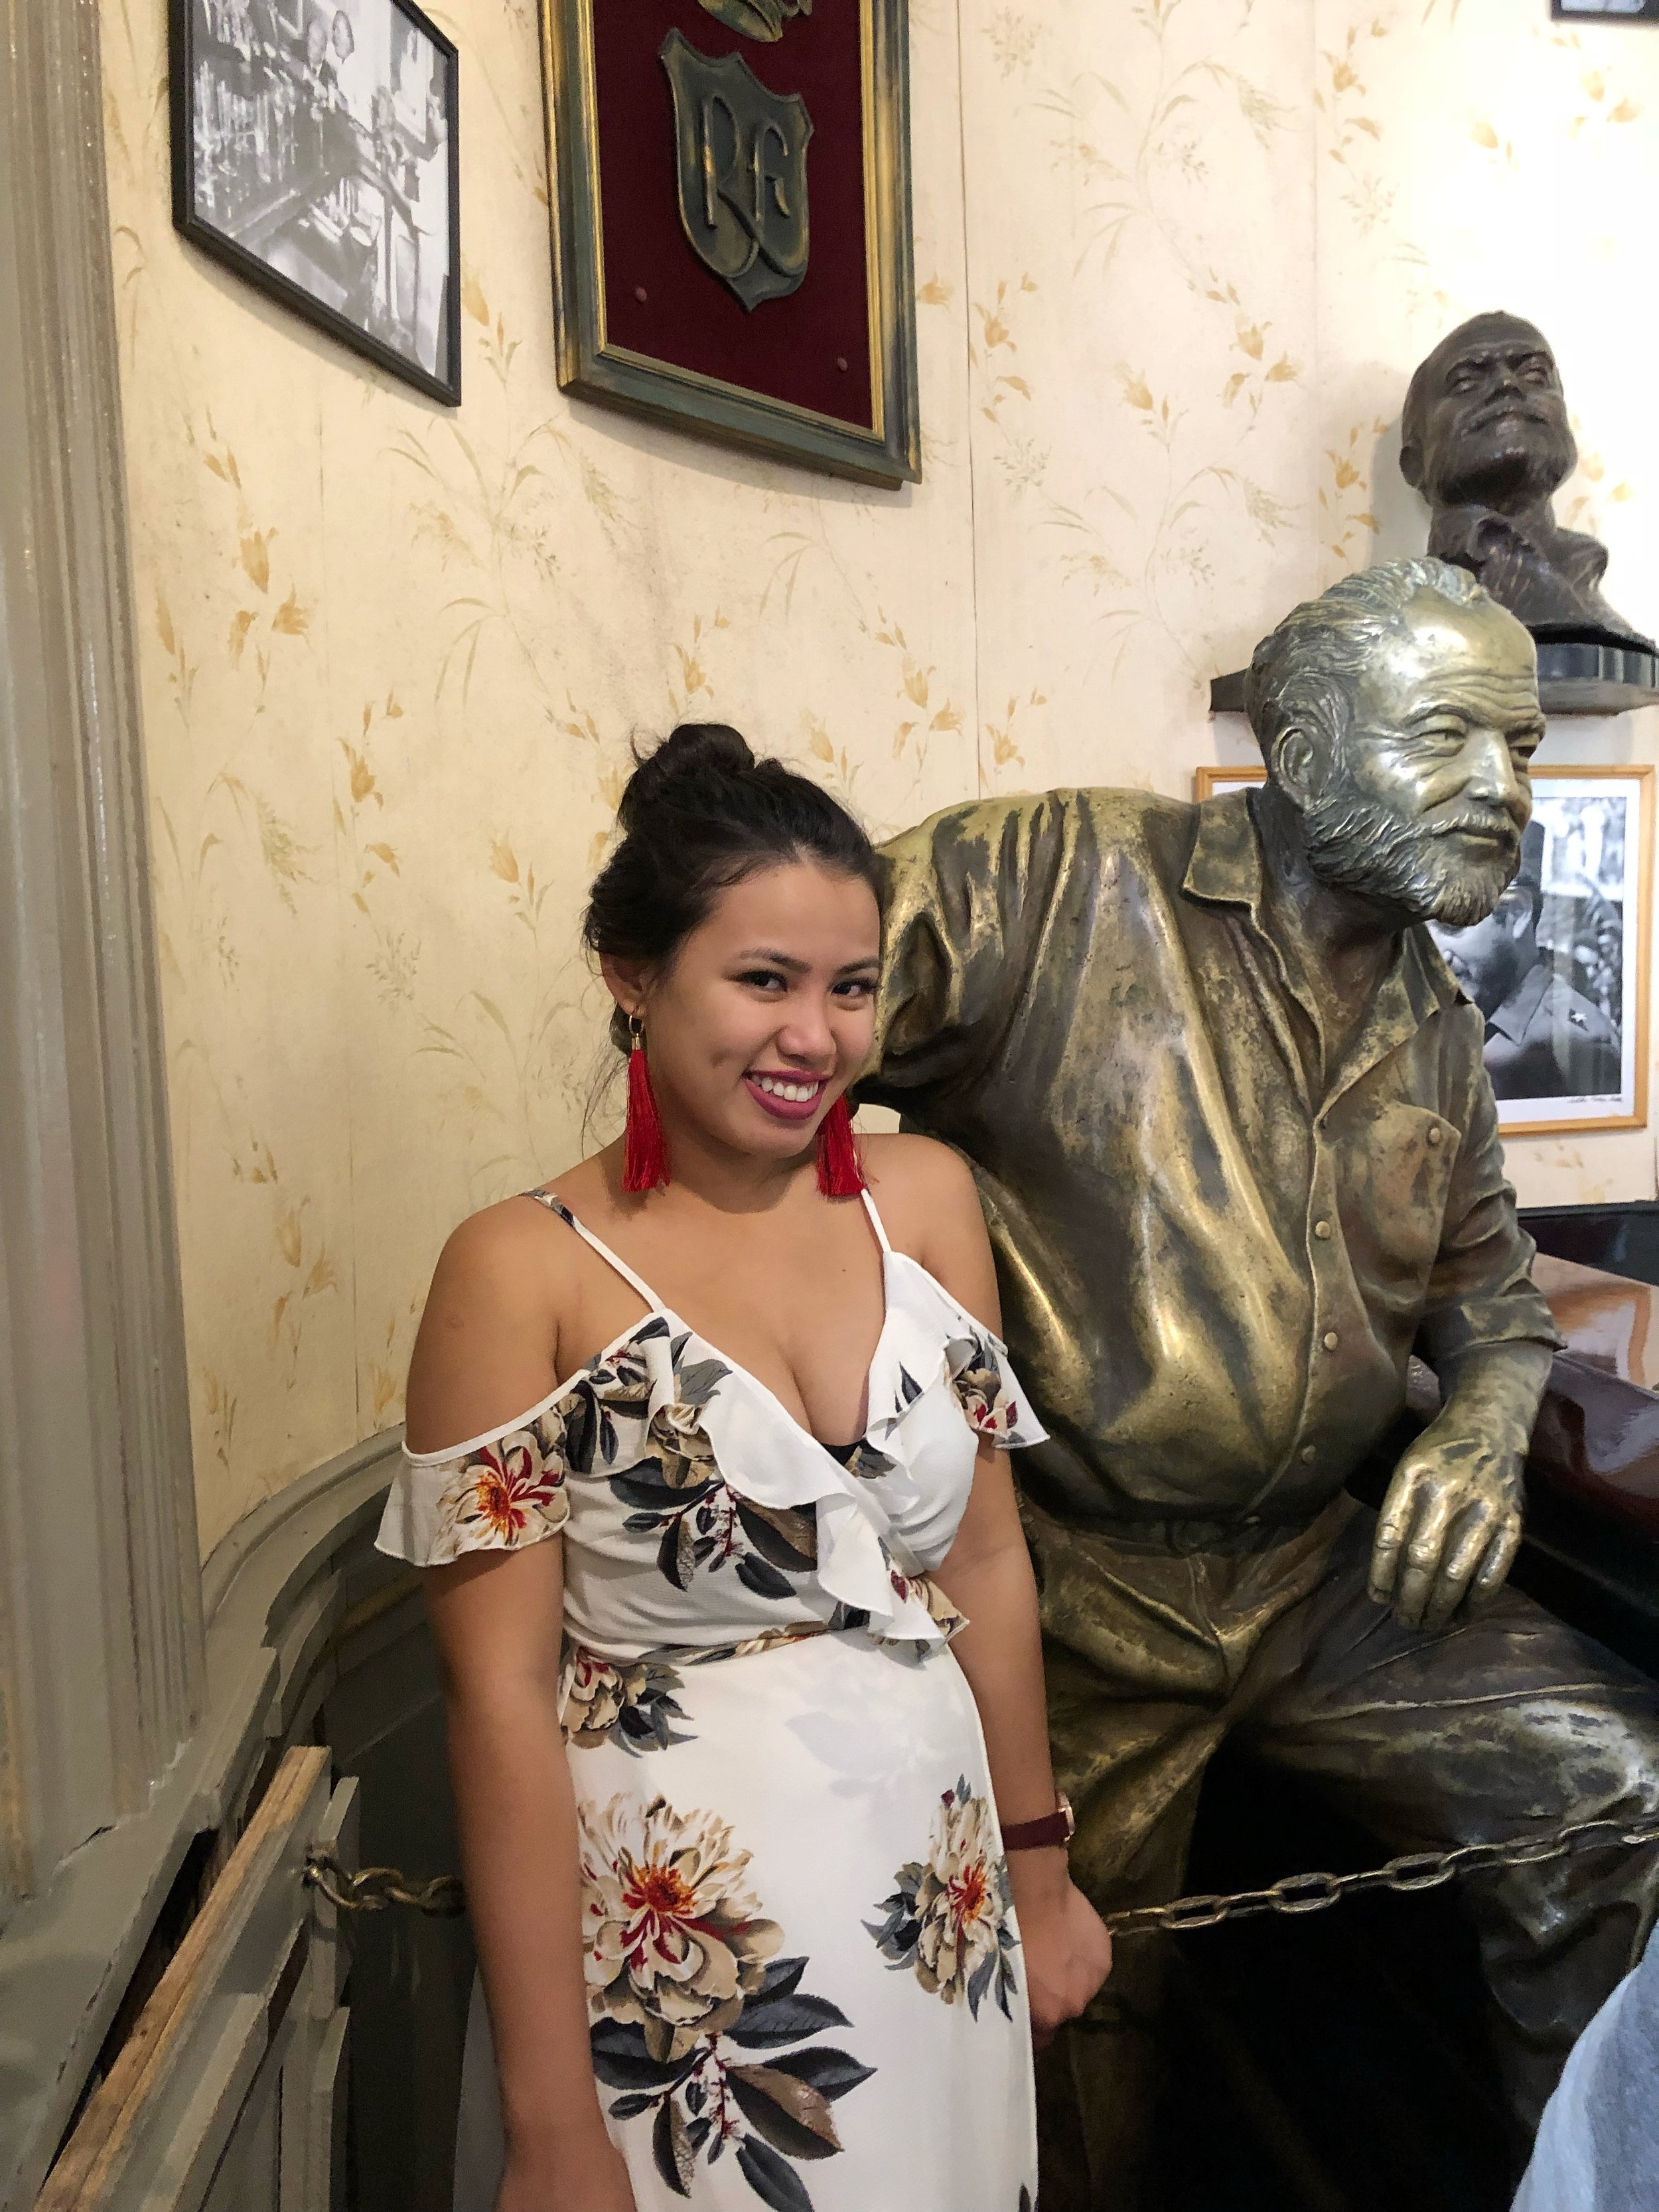 With Hemingway where he used to always hang out